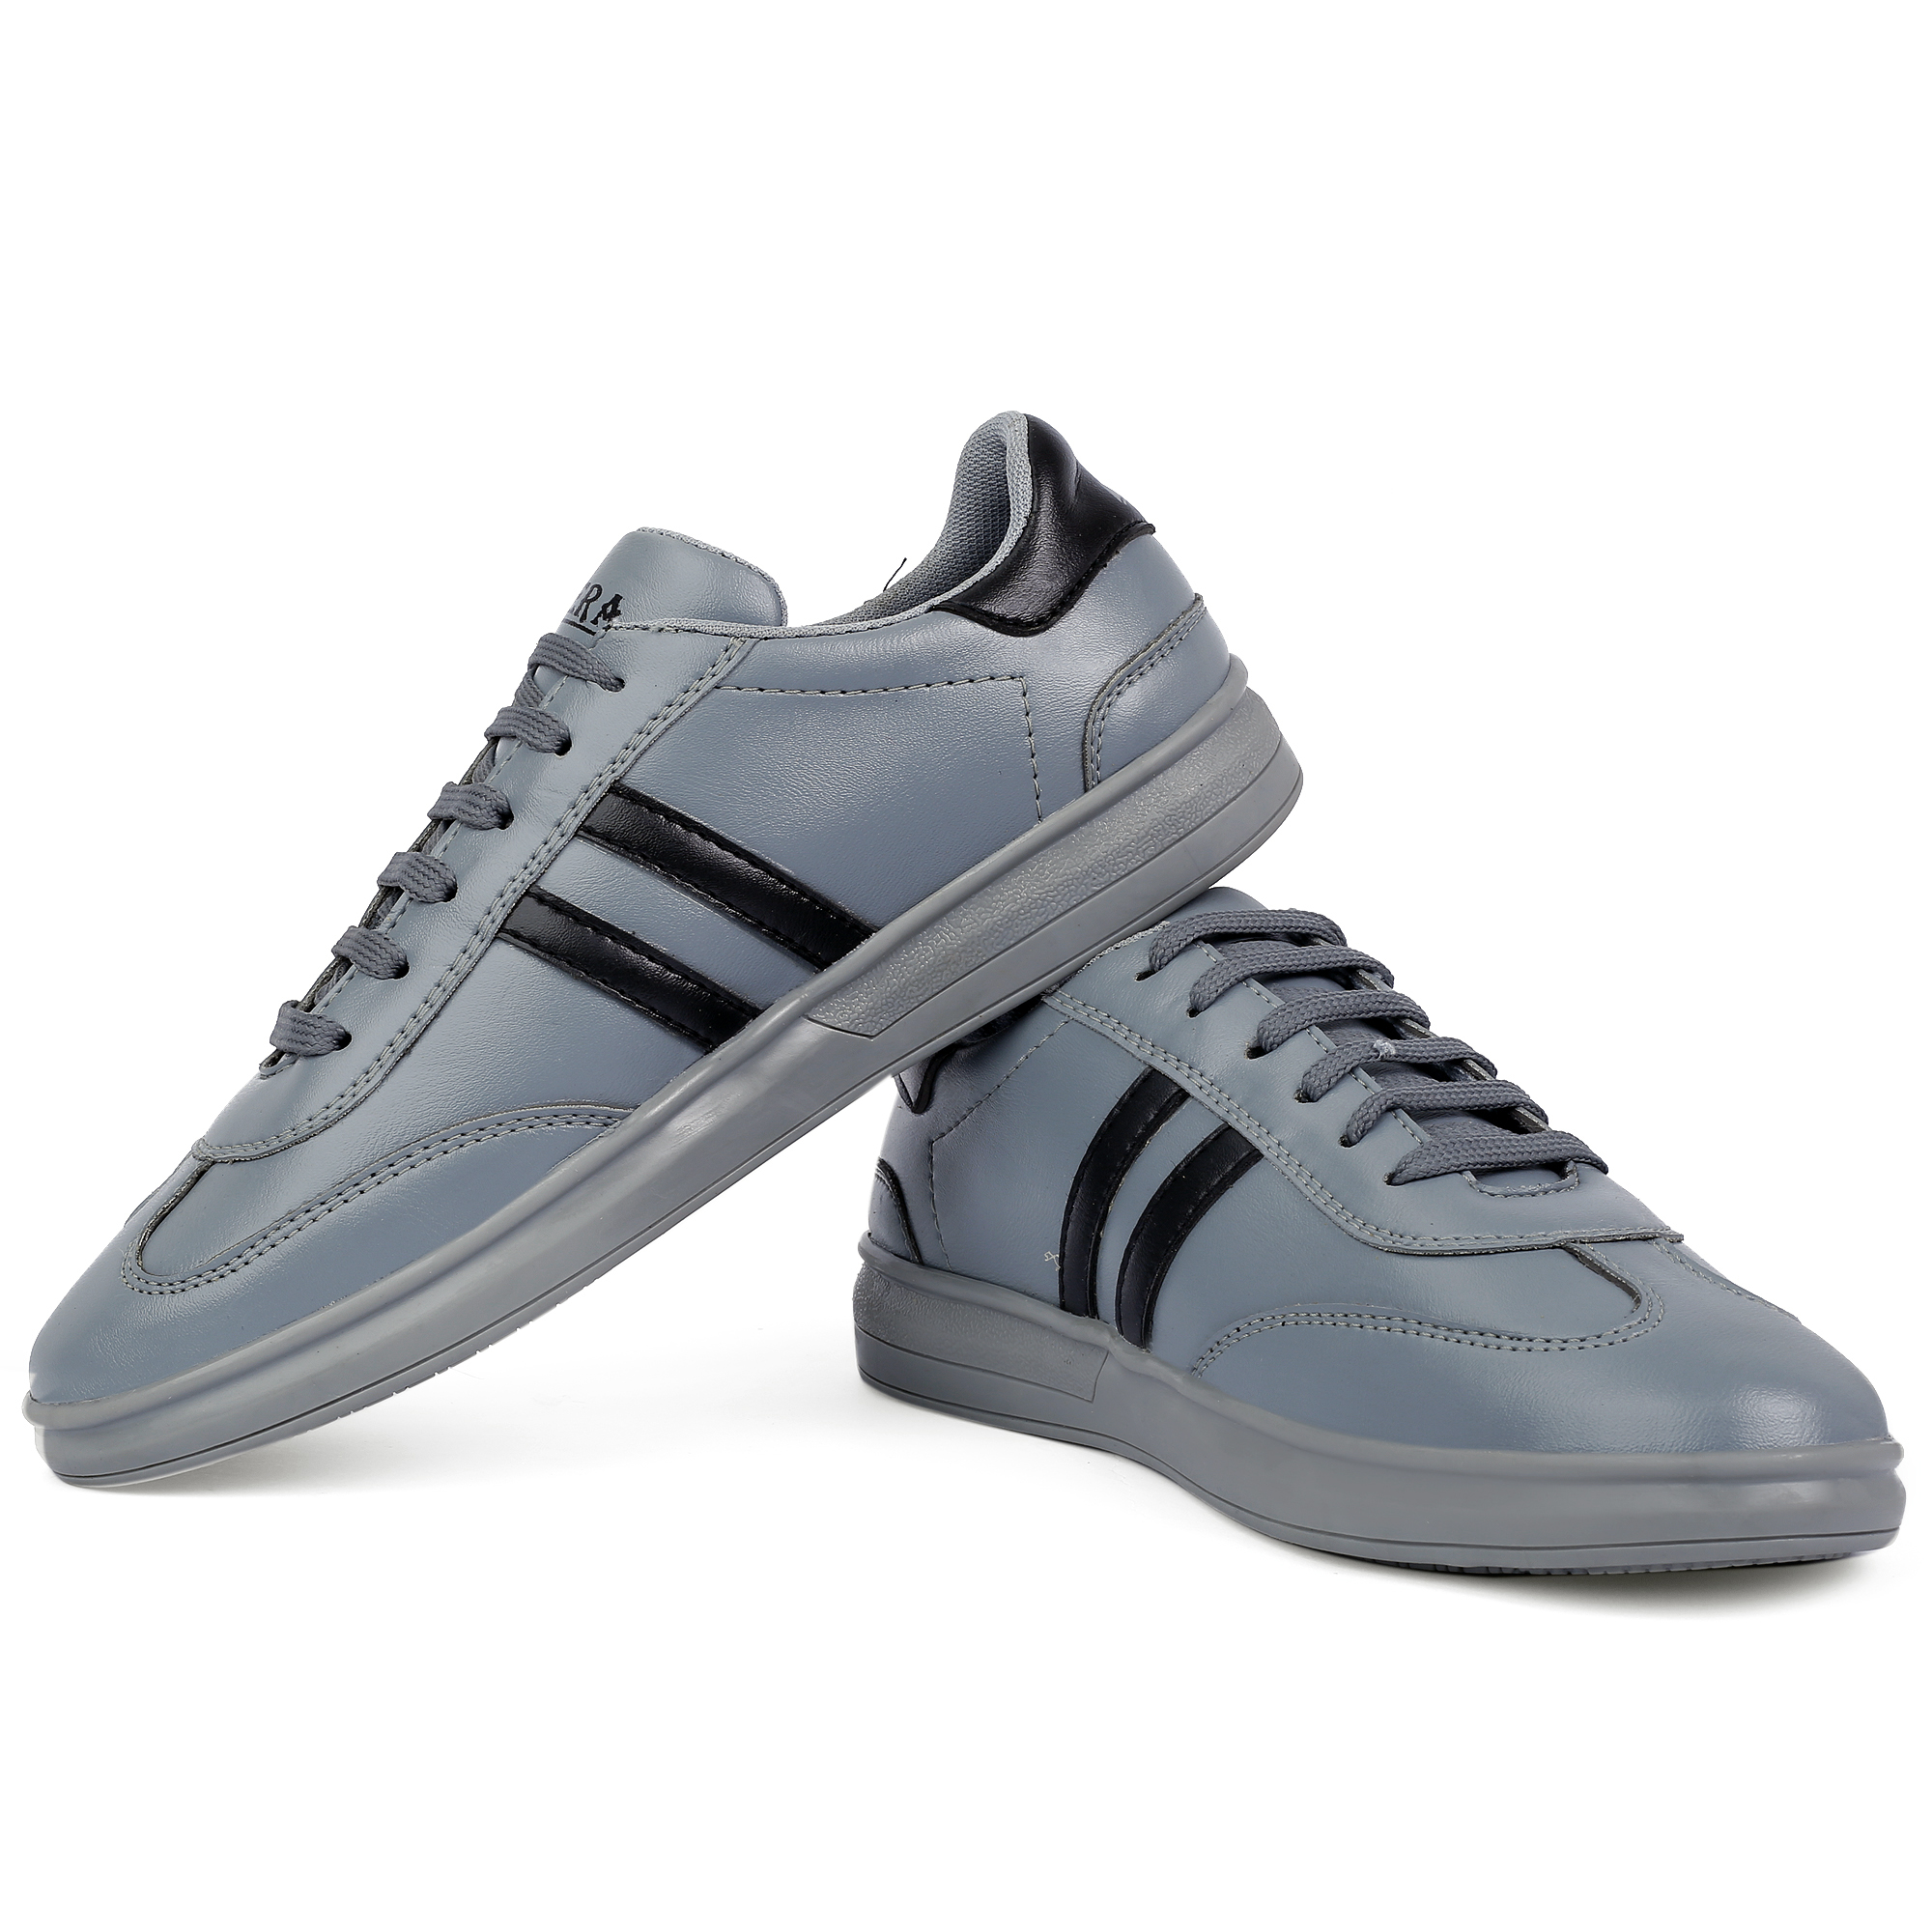 STERA MEN'S STYLISH & PARTYWEAR CORPUS HEAVY SYNTHETIC CANVAS SHOE NHT-CNVS-5001GREY (GREY, 6-10, 8 PAIR)